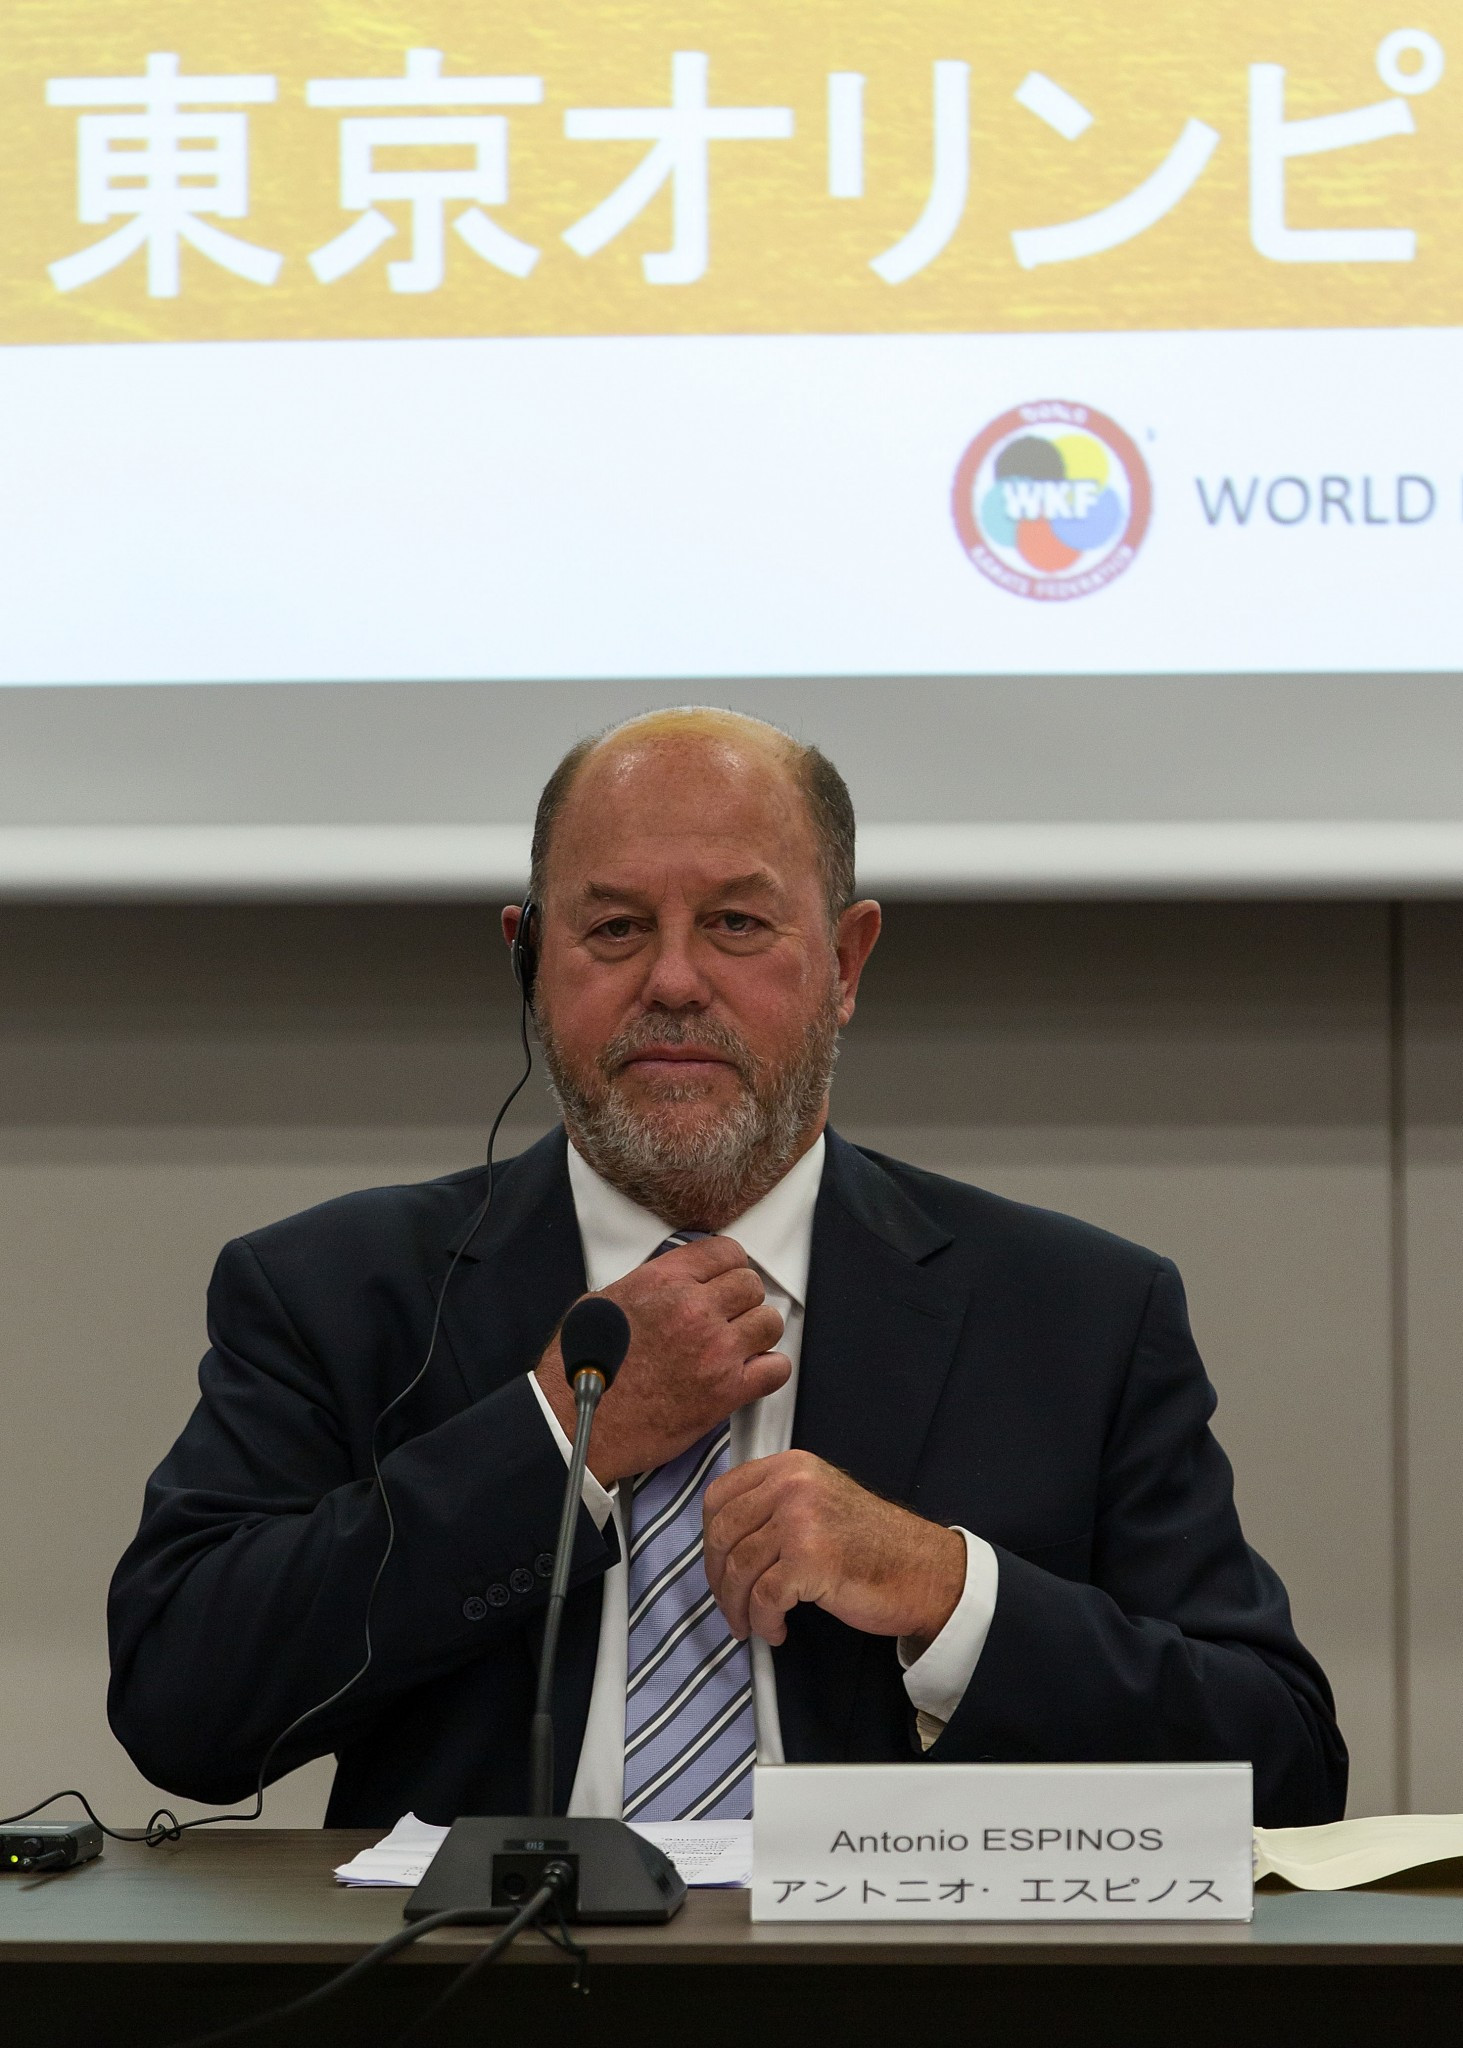 WKF President hails increase in participants since Olympic acceptance